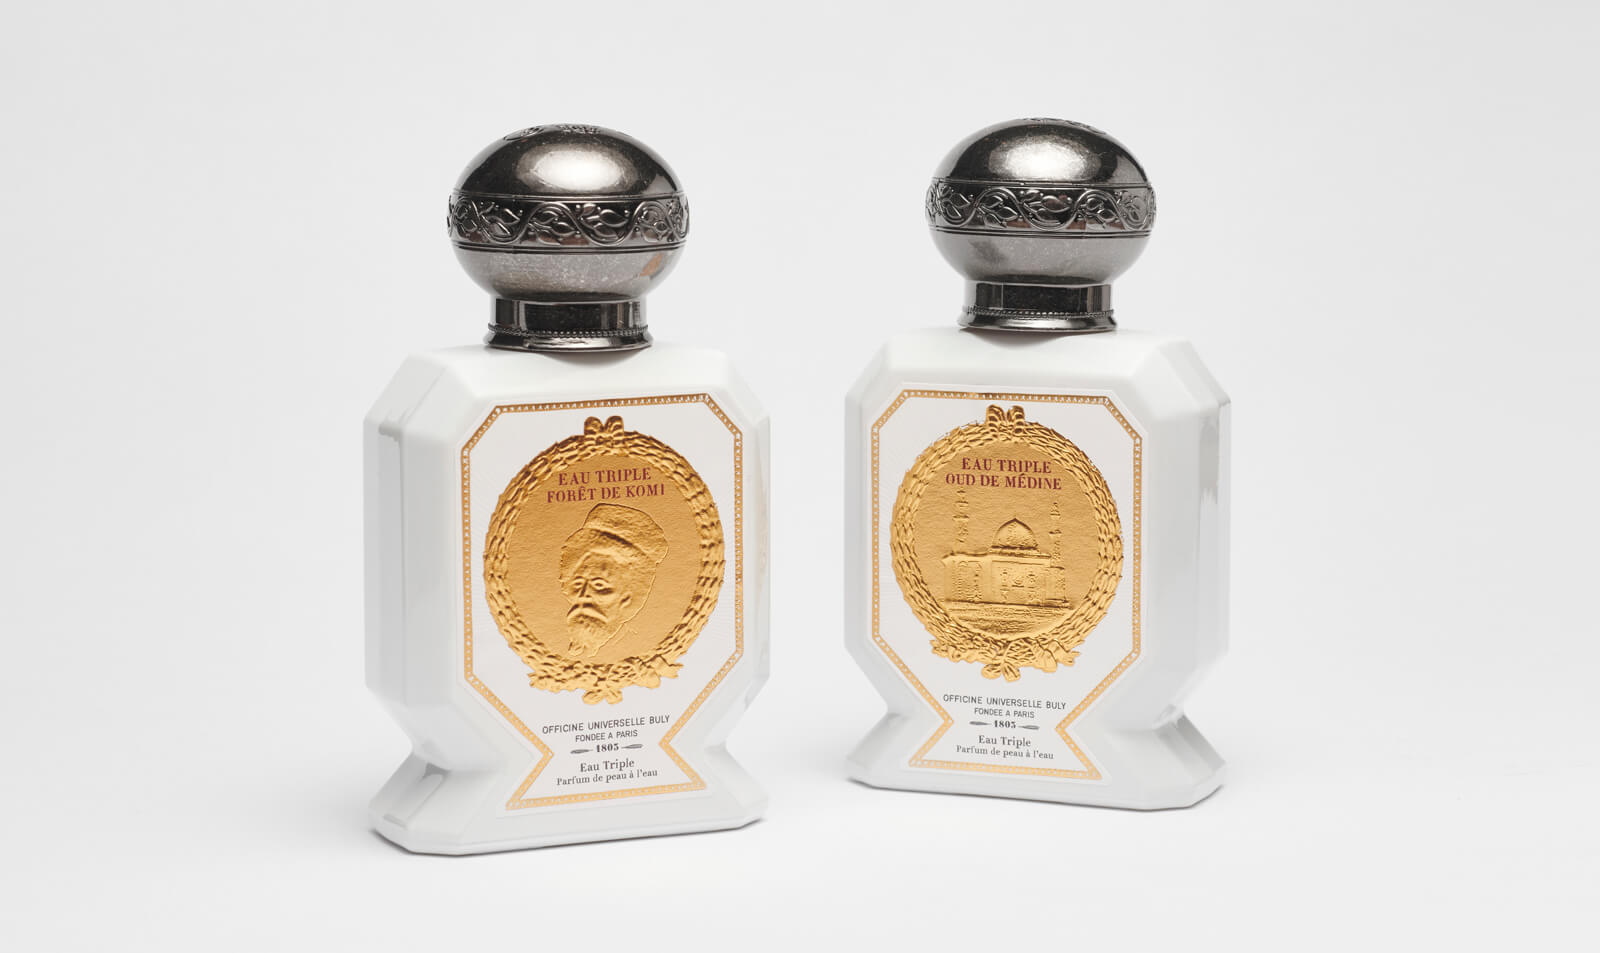 OFFICINE UNIVERSELLE BULY New Fragrance